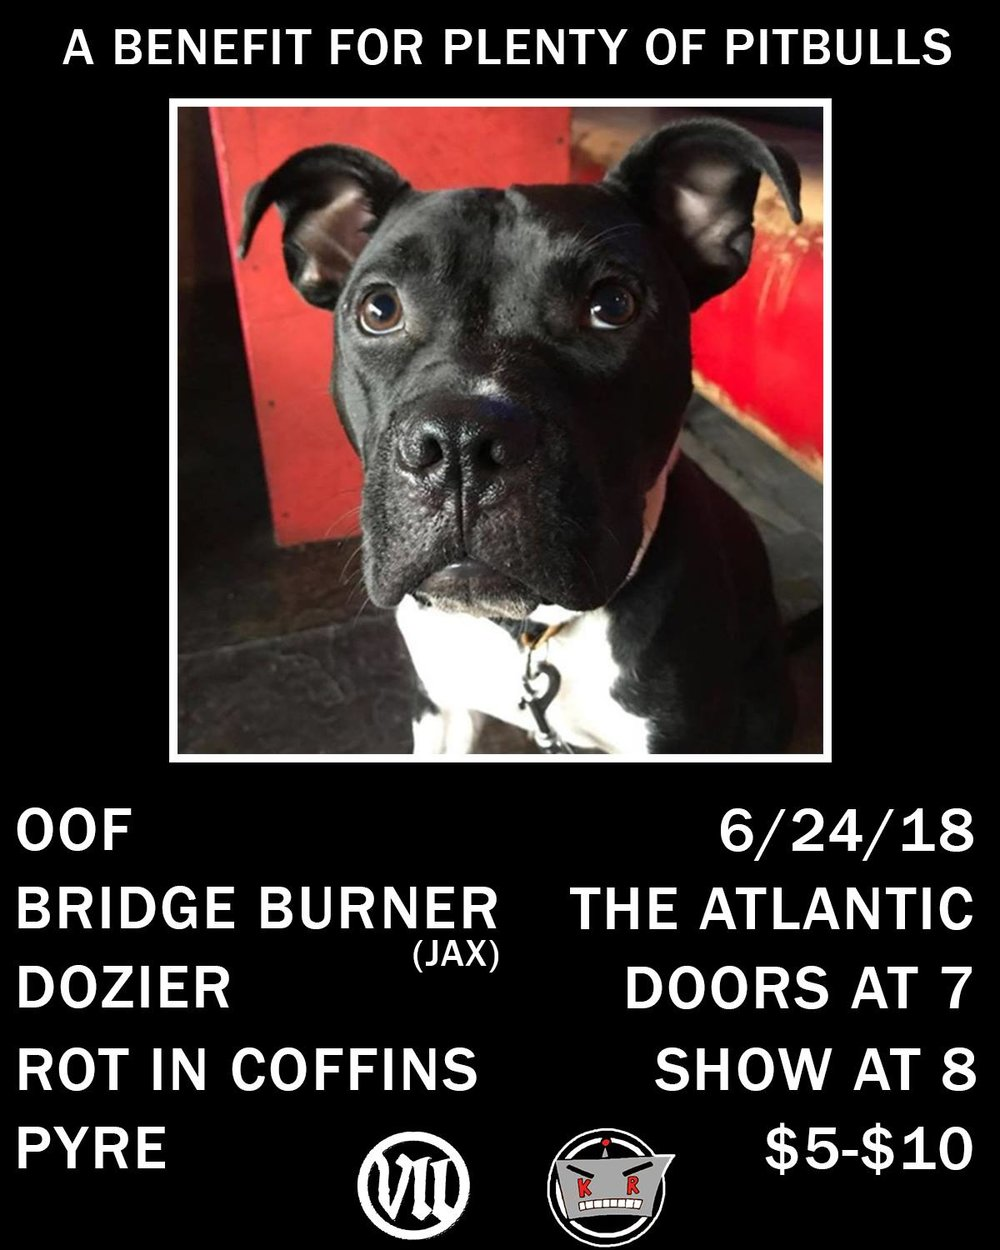 KILLER ROBOT MUSIC & VII RECORDS PRESENT: Pit for Pups: A benefit show for Plenty of Pitbulls.  With:  Bridge Burner (Jacksonville, FL  https://bridgeburnerfl.bandcamp.com   Oof   https://oofgnvfl.bandcamp.com/releases   Pyre  https://pyregvl.bandcamp.com   Dozier  https://dozier666.bandcamp.com/releases   Rot in Coffins  https://rotincoffins.bandcamp.com   For more info about Plenty of Pitbulls:  http://popb.org   Doors @ 7 Show @ 8 $5-$10 sliding scale donations.